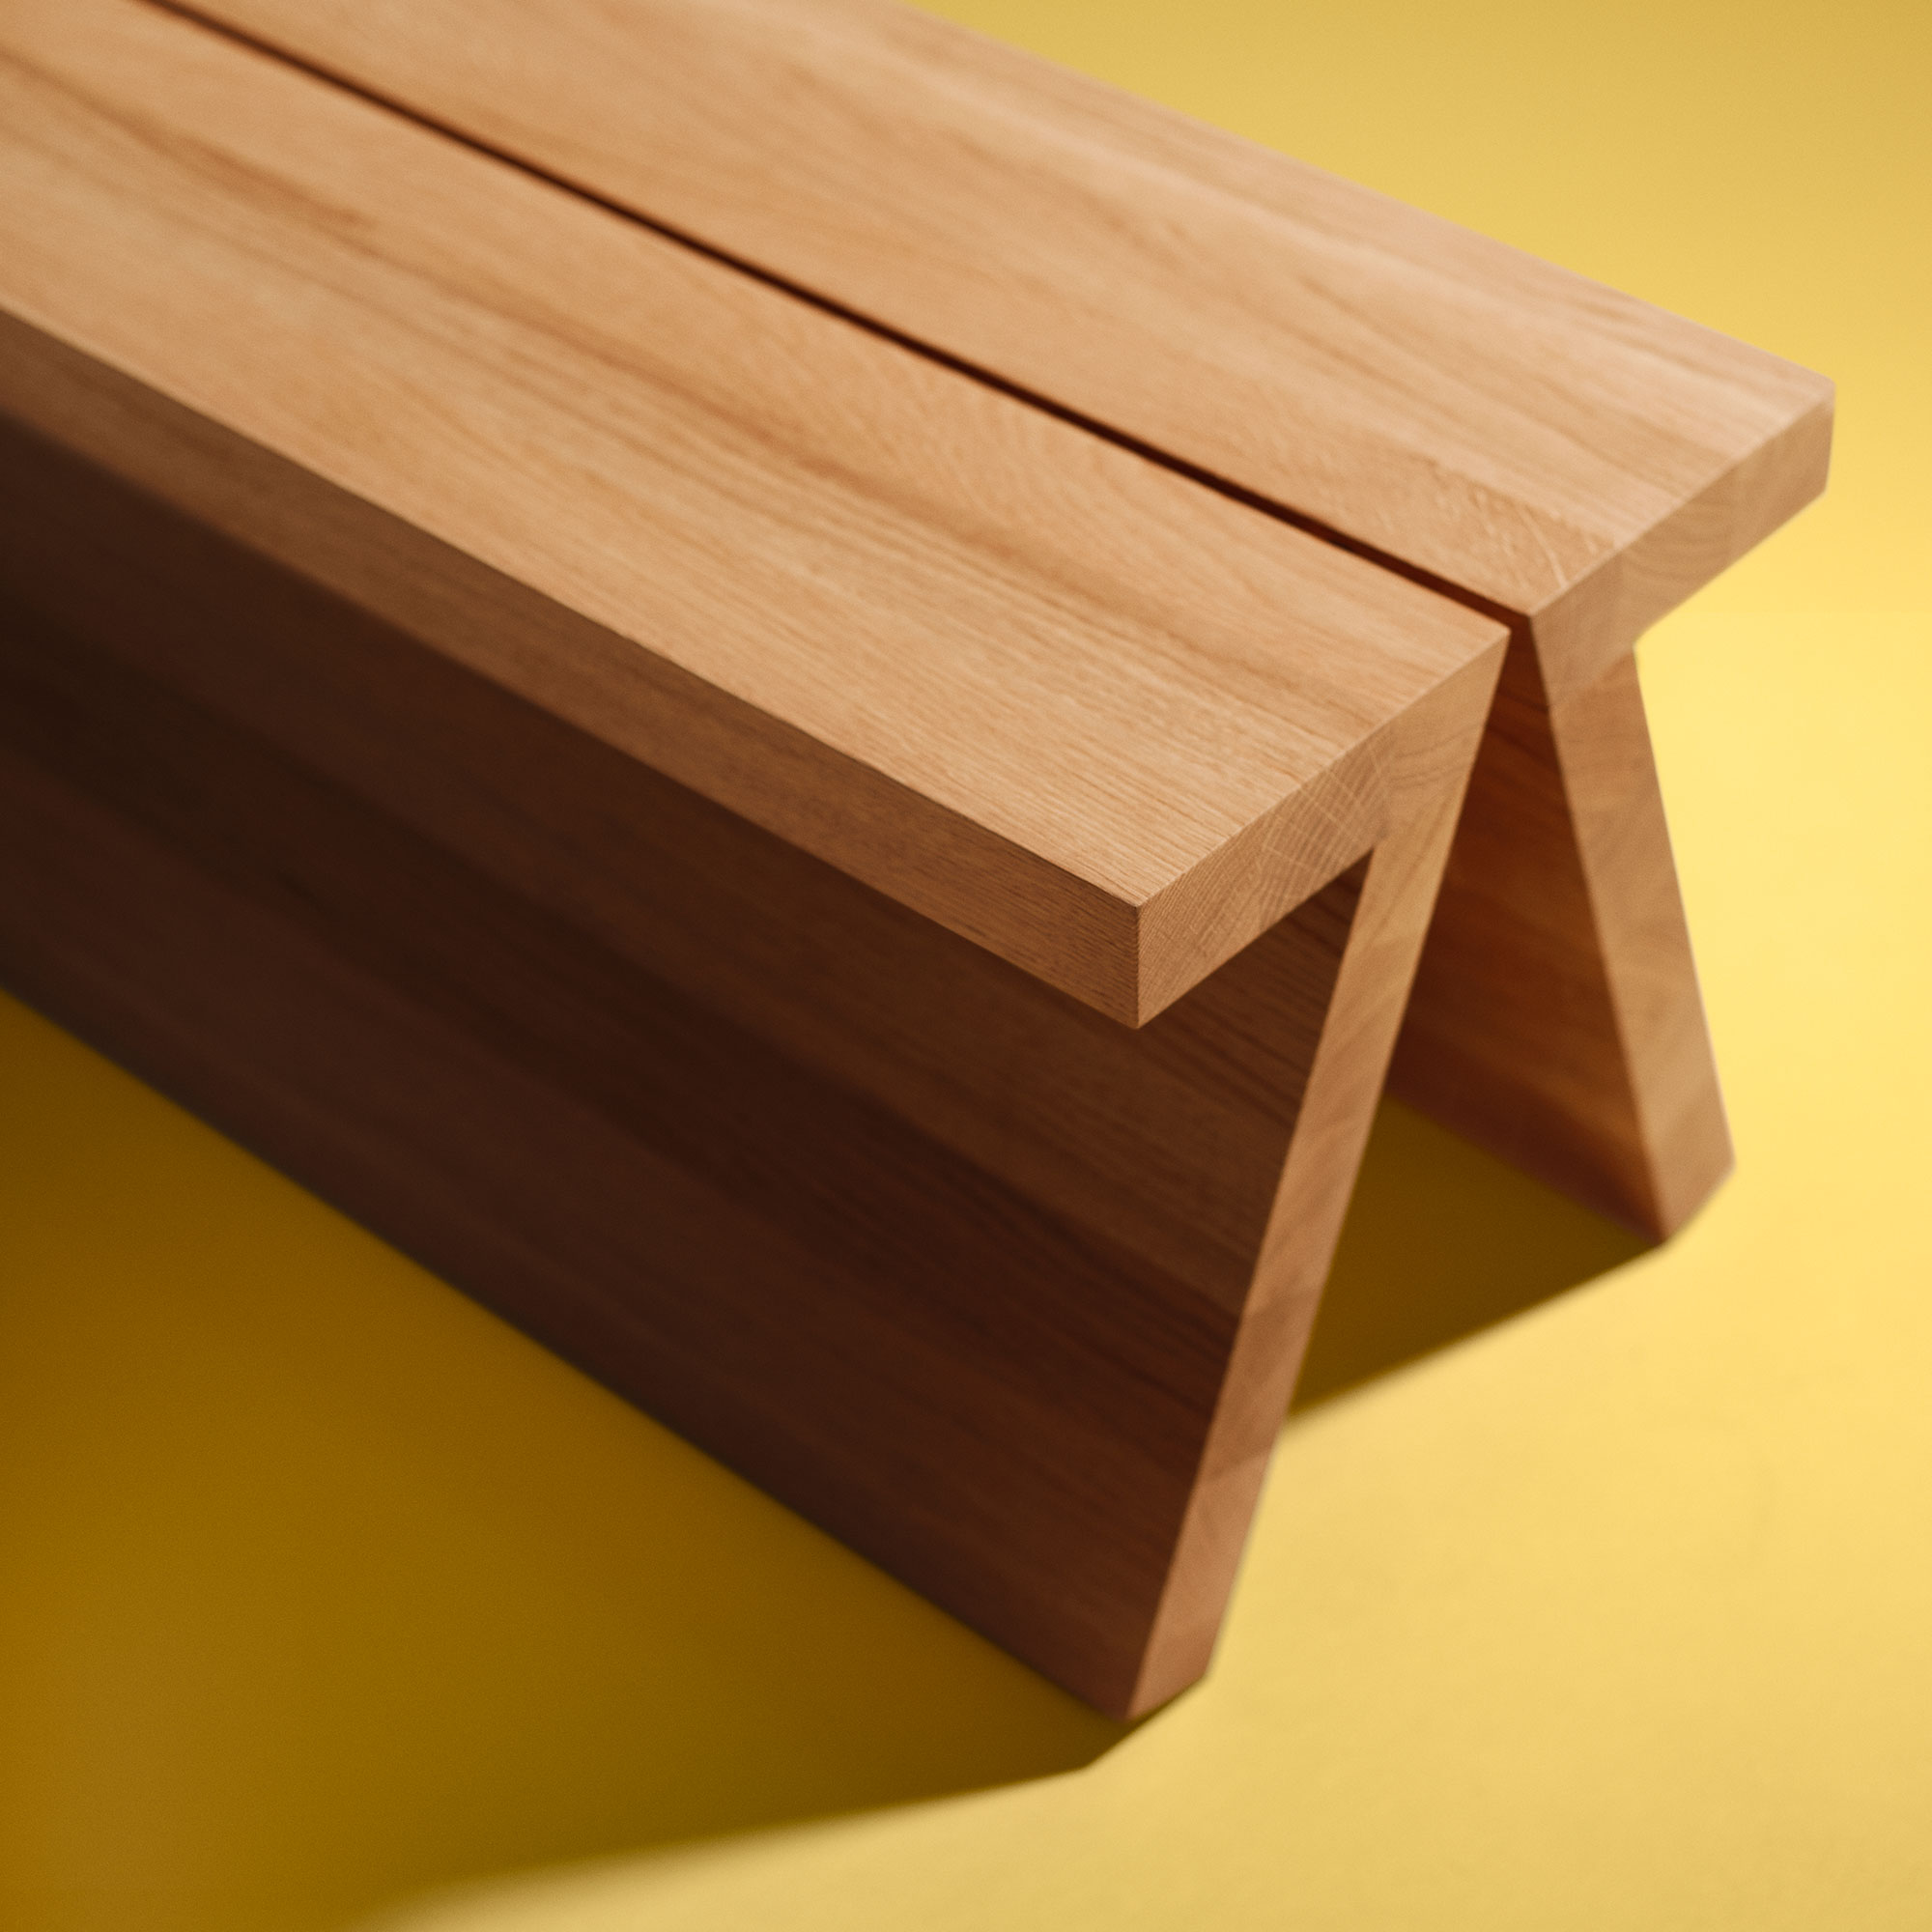 Fogia Supersolid Object 3